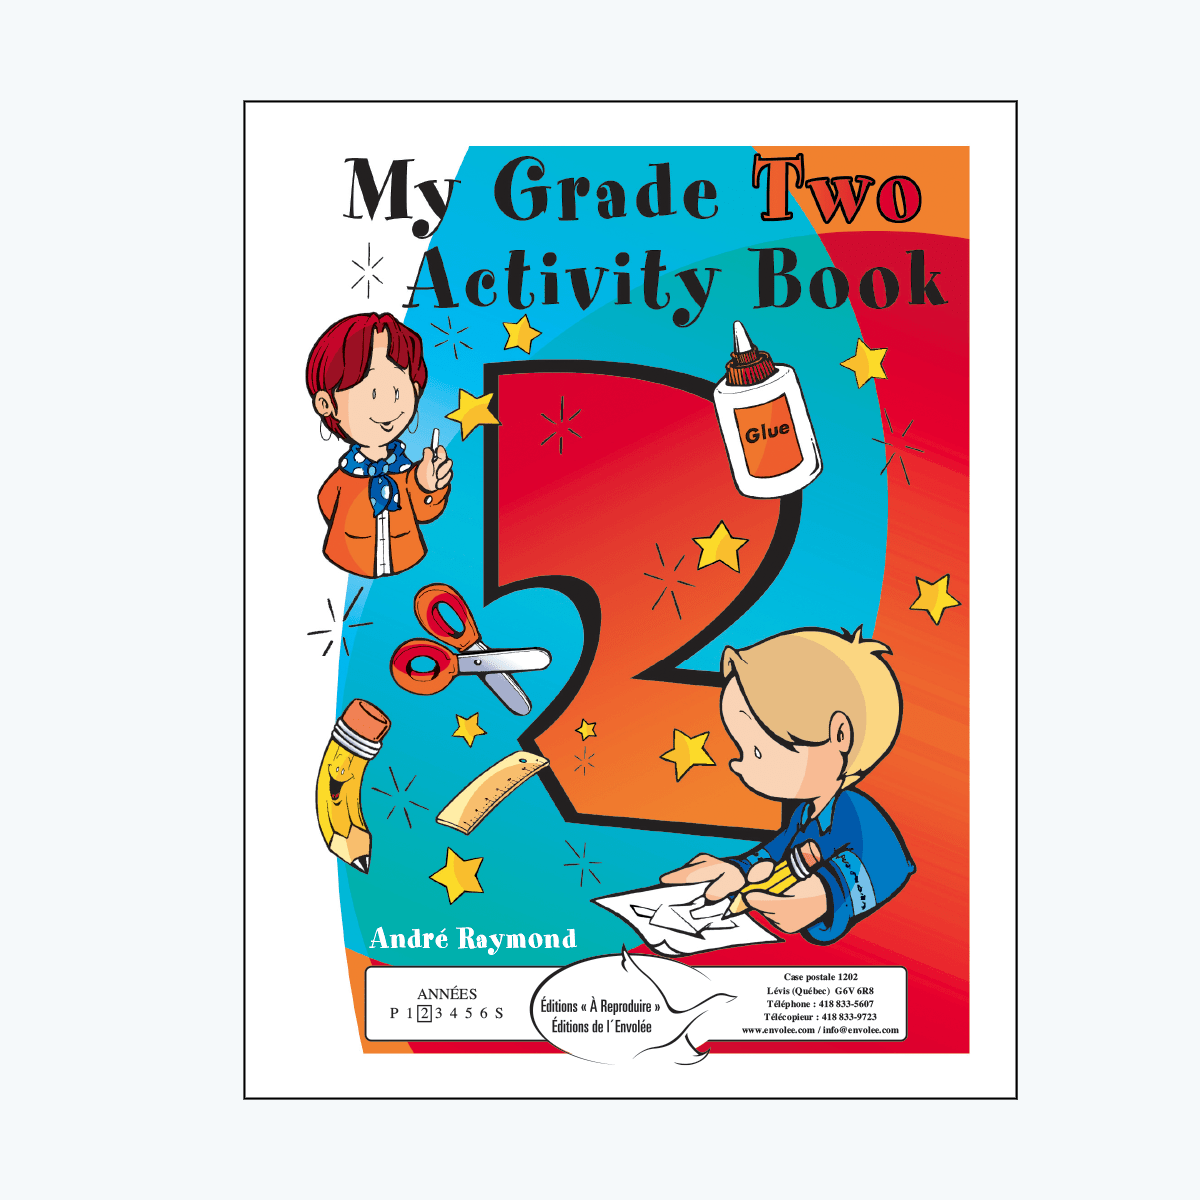 My Grade Two Activity Book